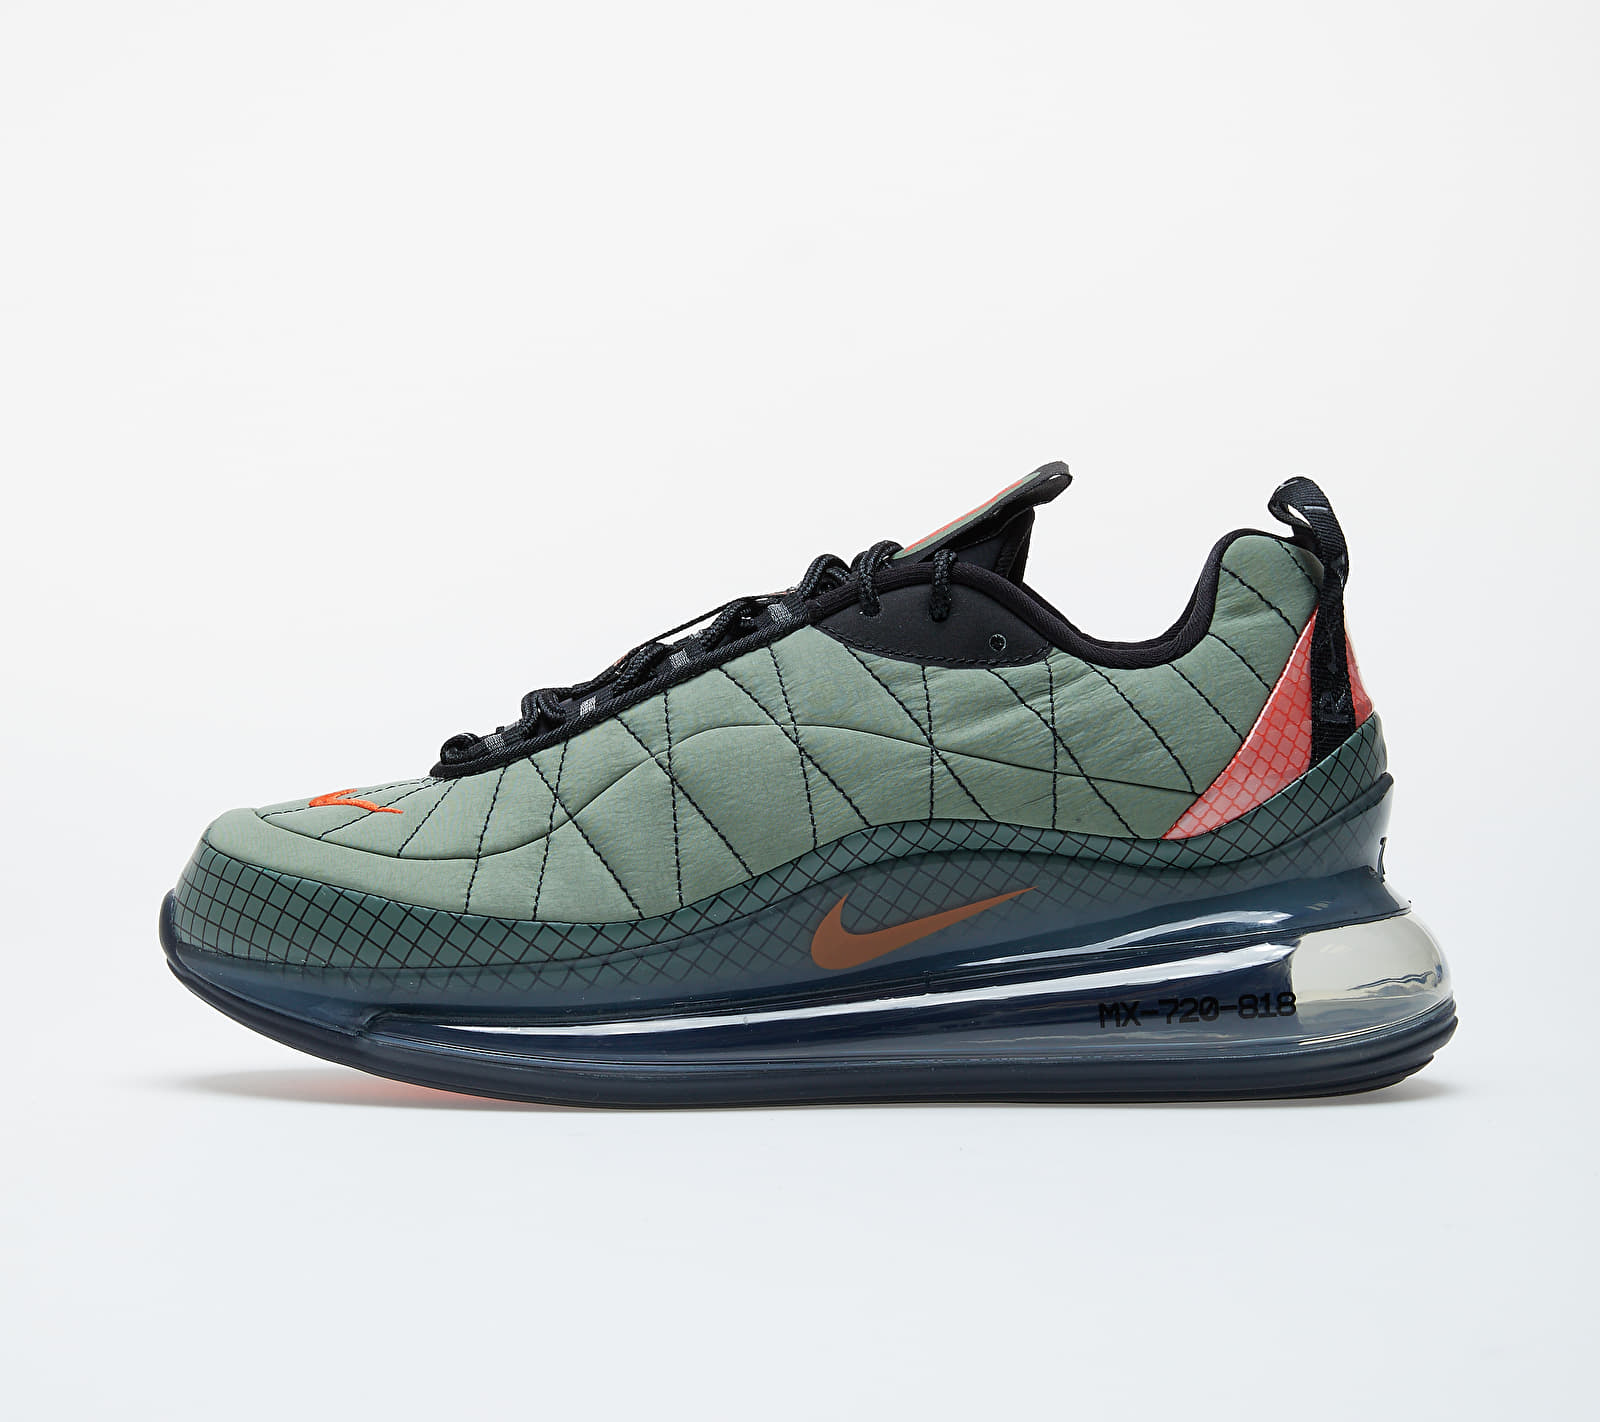 Nike Mx-720-818 Jade Stone/ Team Orange-Juniper Fog-Black CI3871-300